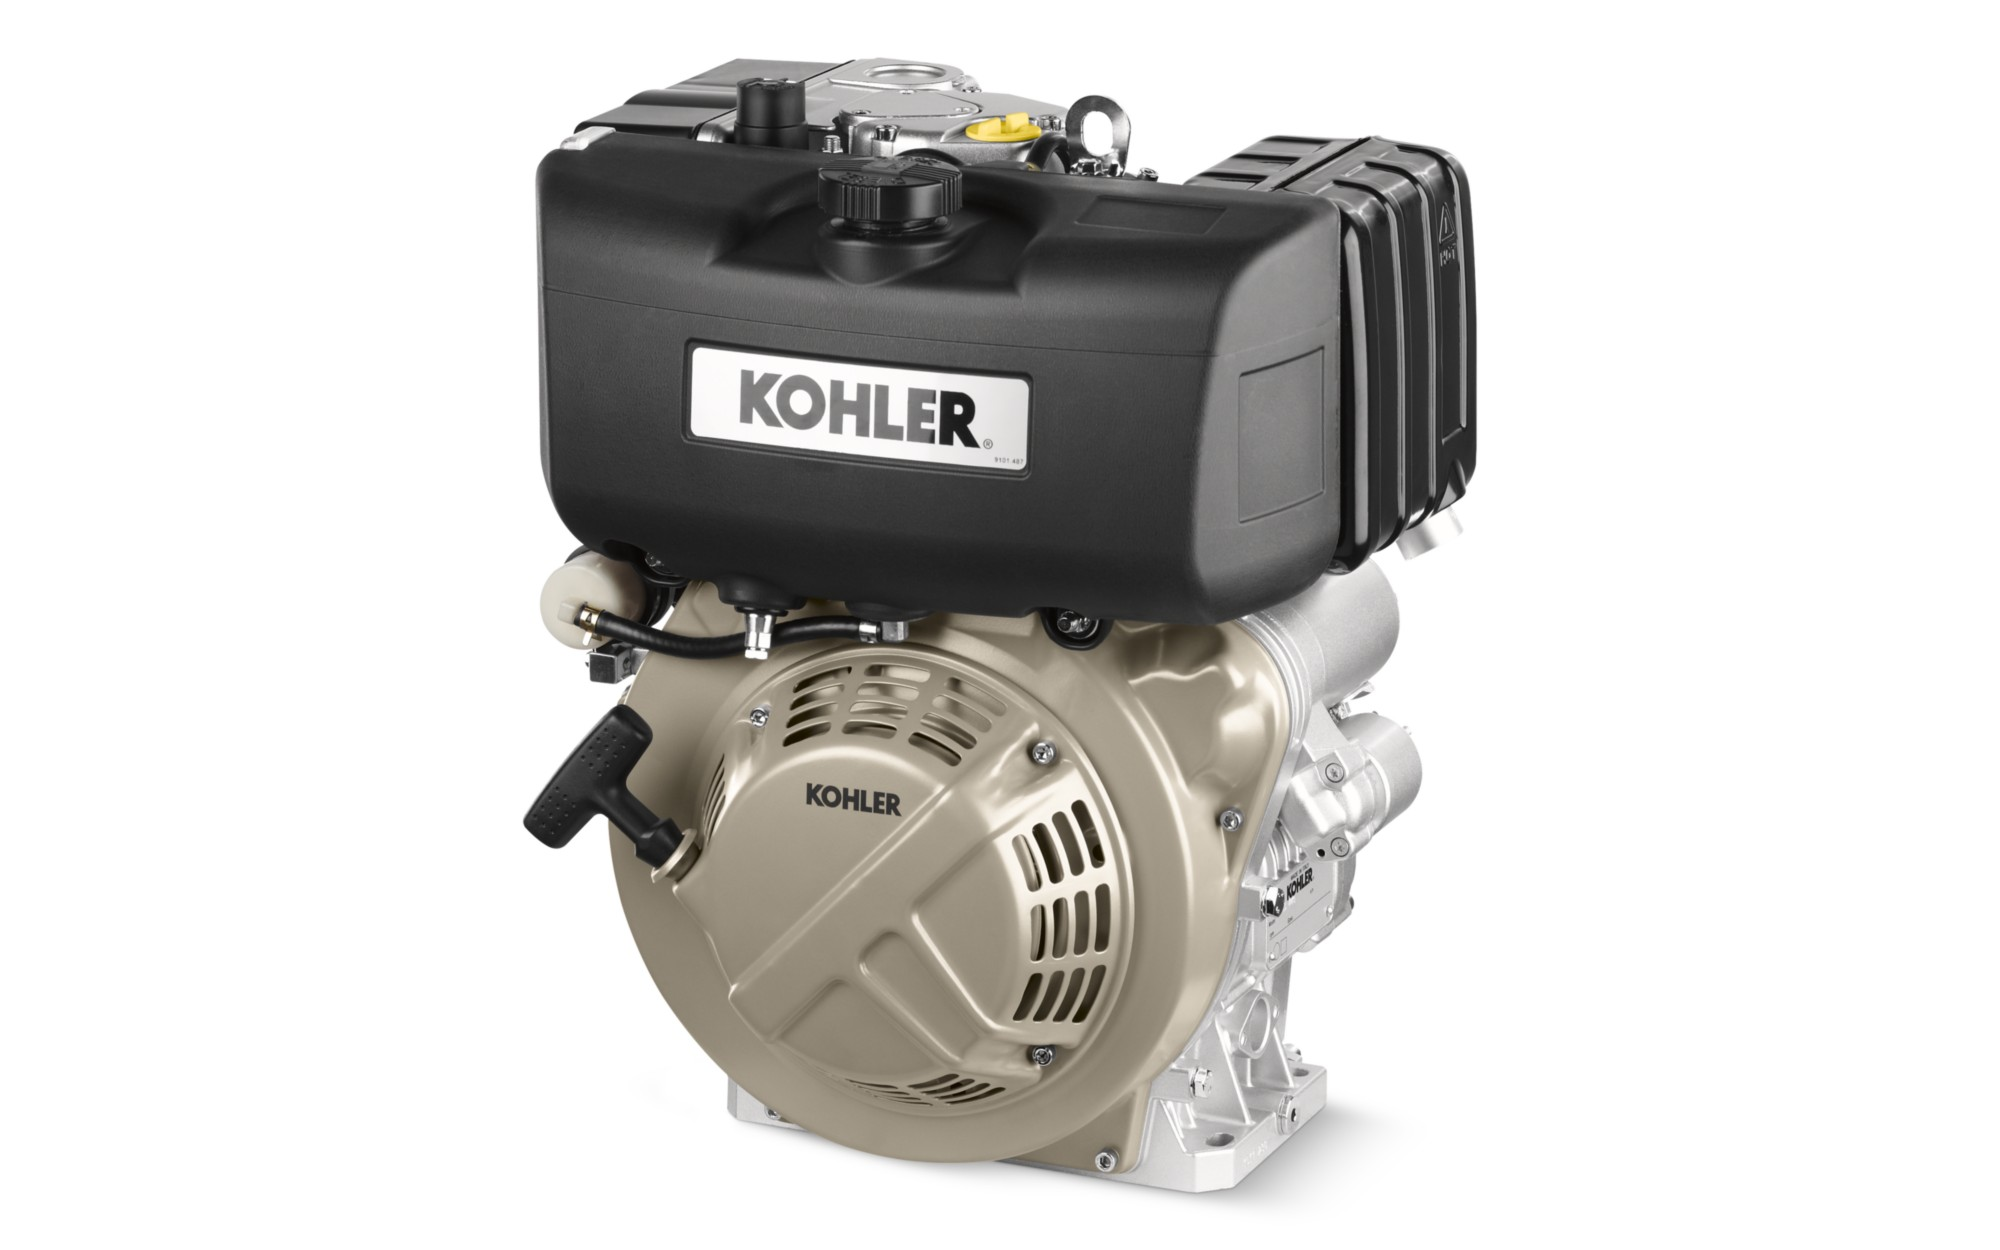 Kd440 Diesel Air Cooled Kohler 15 5 Engine Diagram